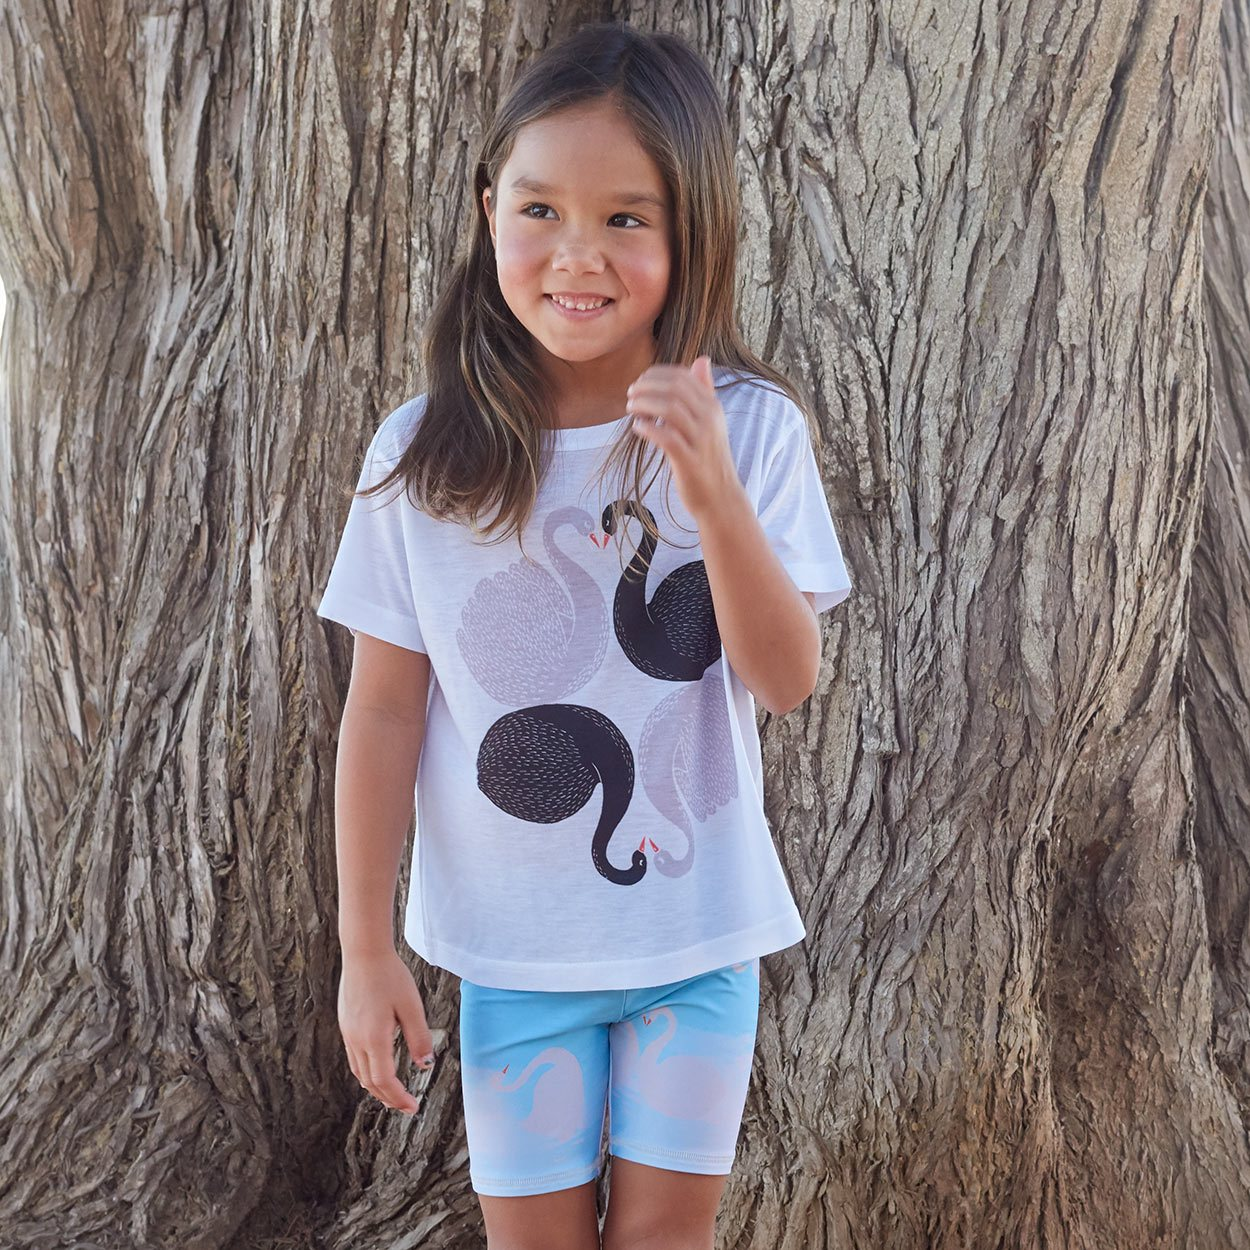 Girls Love Swans Graphic Tshirt Black White Gray Size Xs L Girl Smiling Looking At The Horizon Sunpoplife